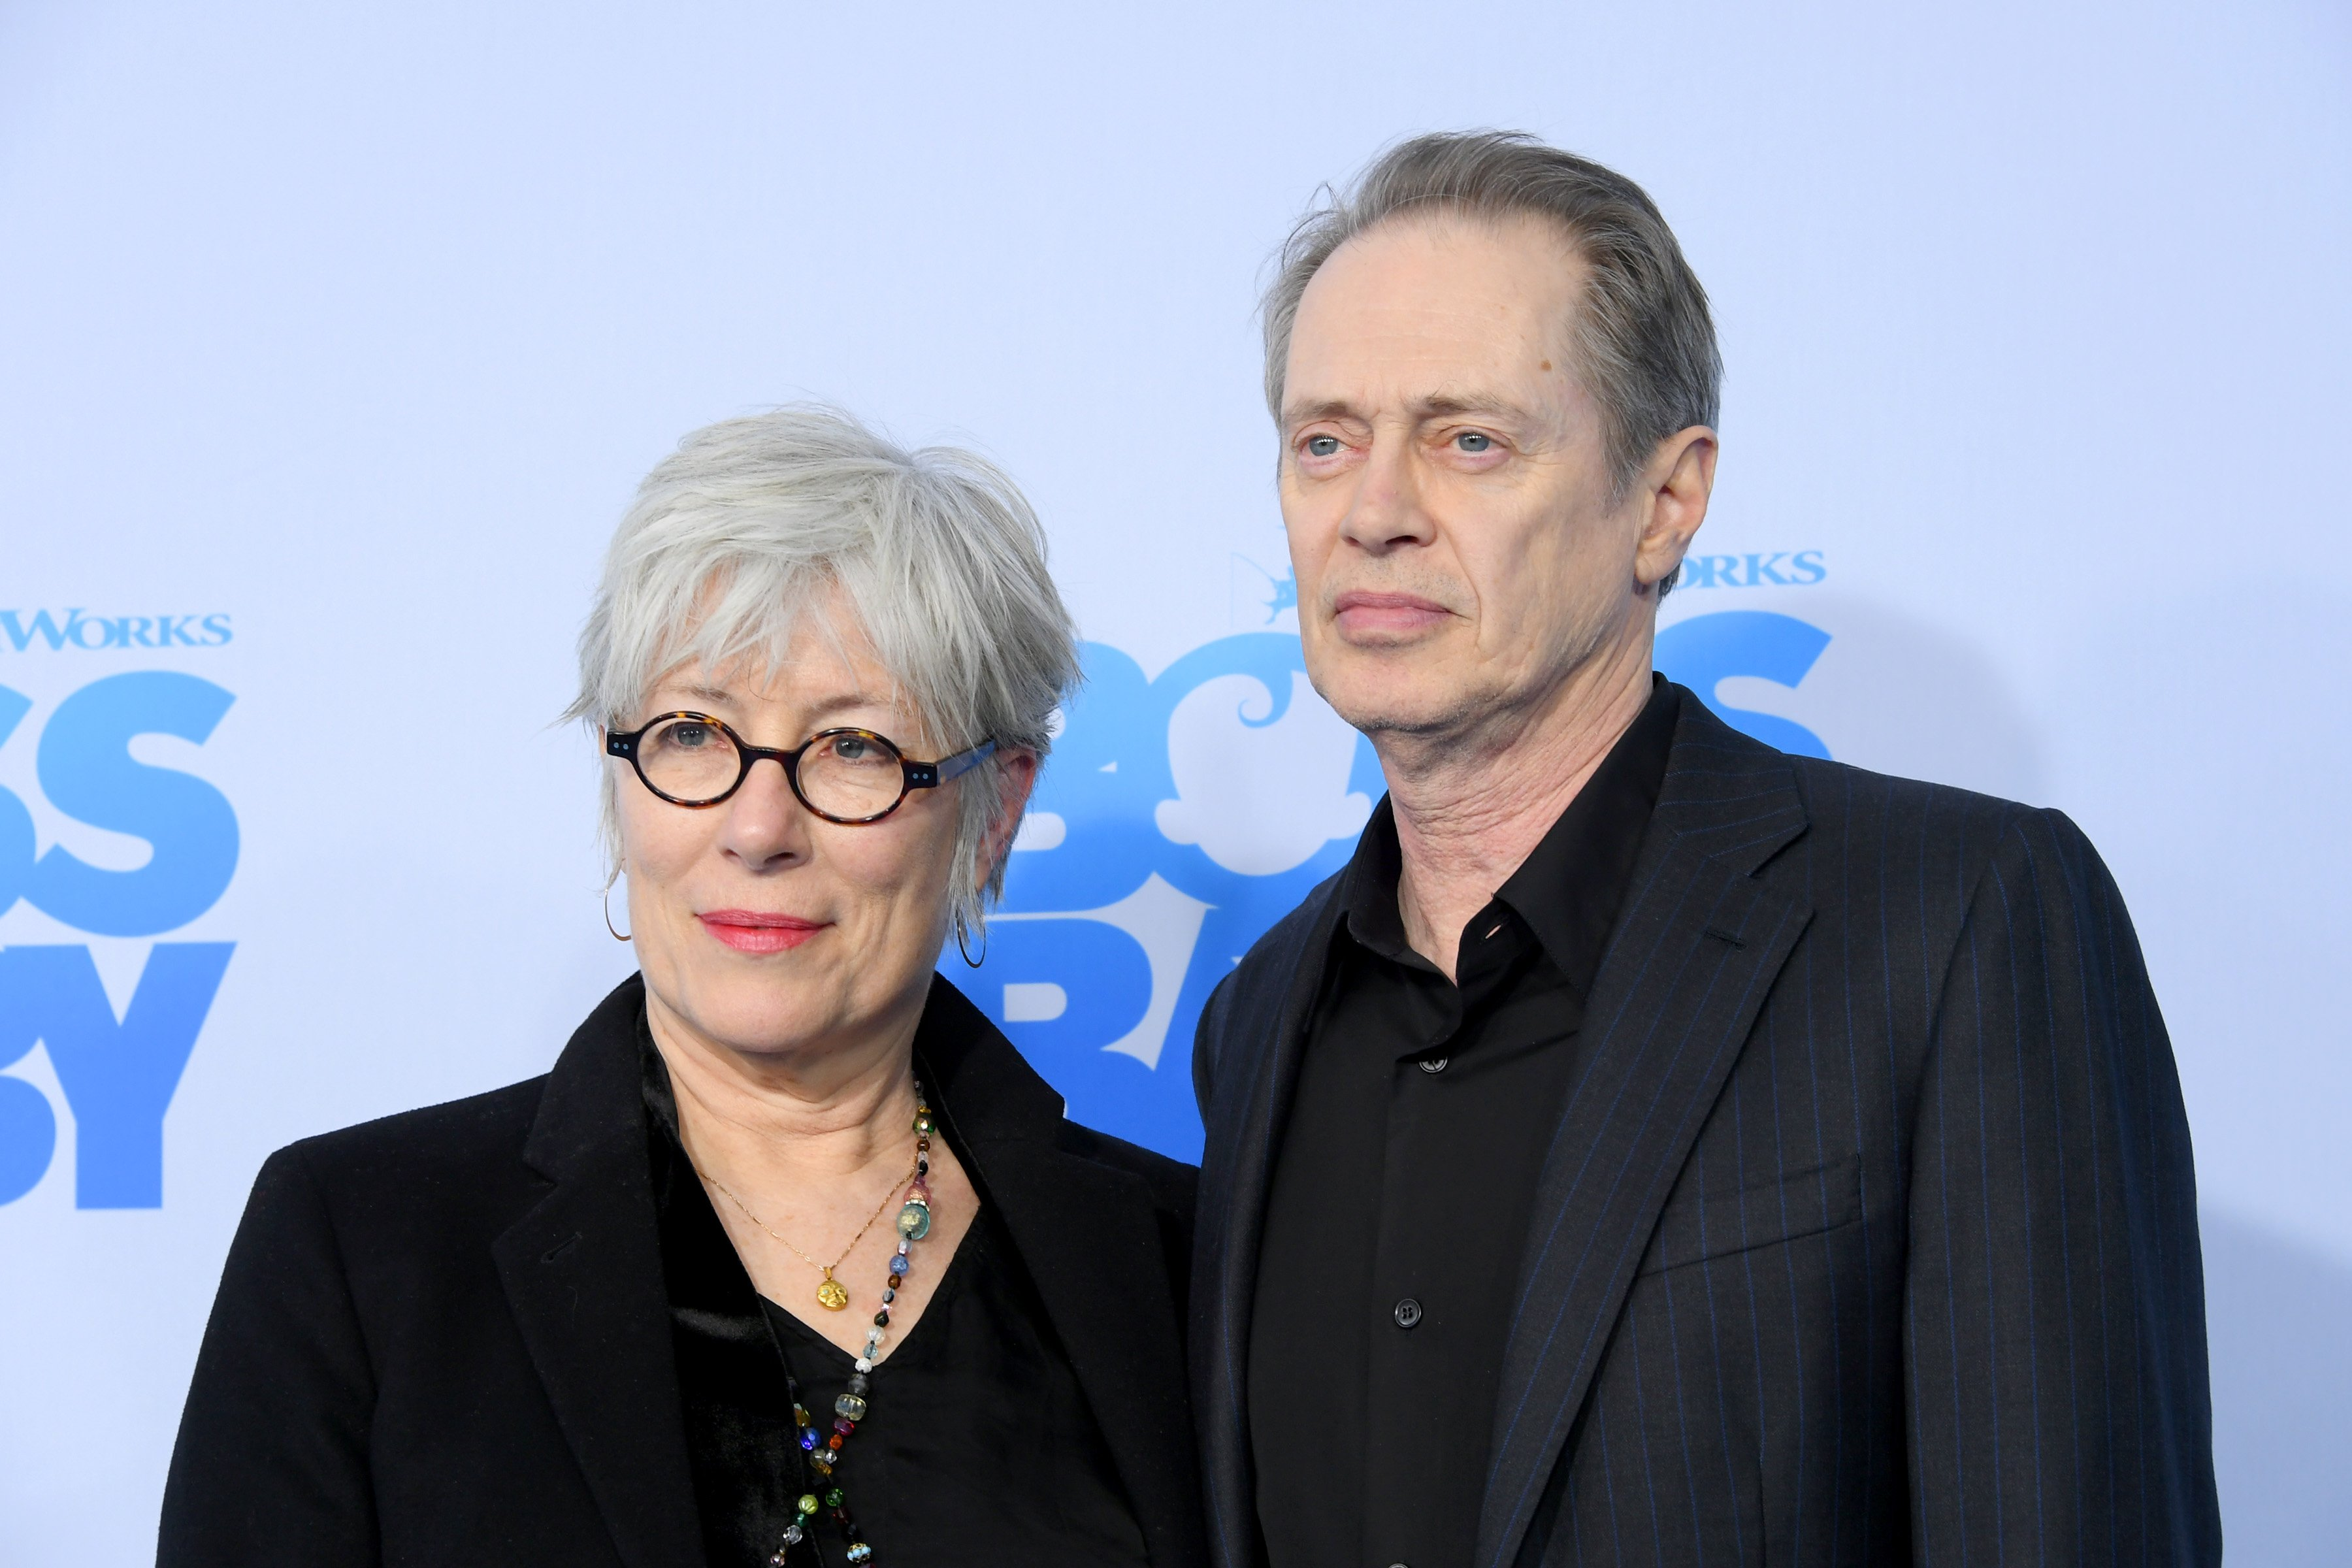 """Jo Andres and Steve Buscemi attend """"The Boss Baby"""" New York Premiere at AMC Loews Lincoln Square 13 theater on March 20, 2017 in New York City 